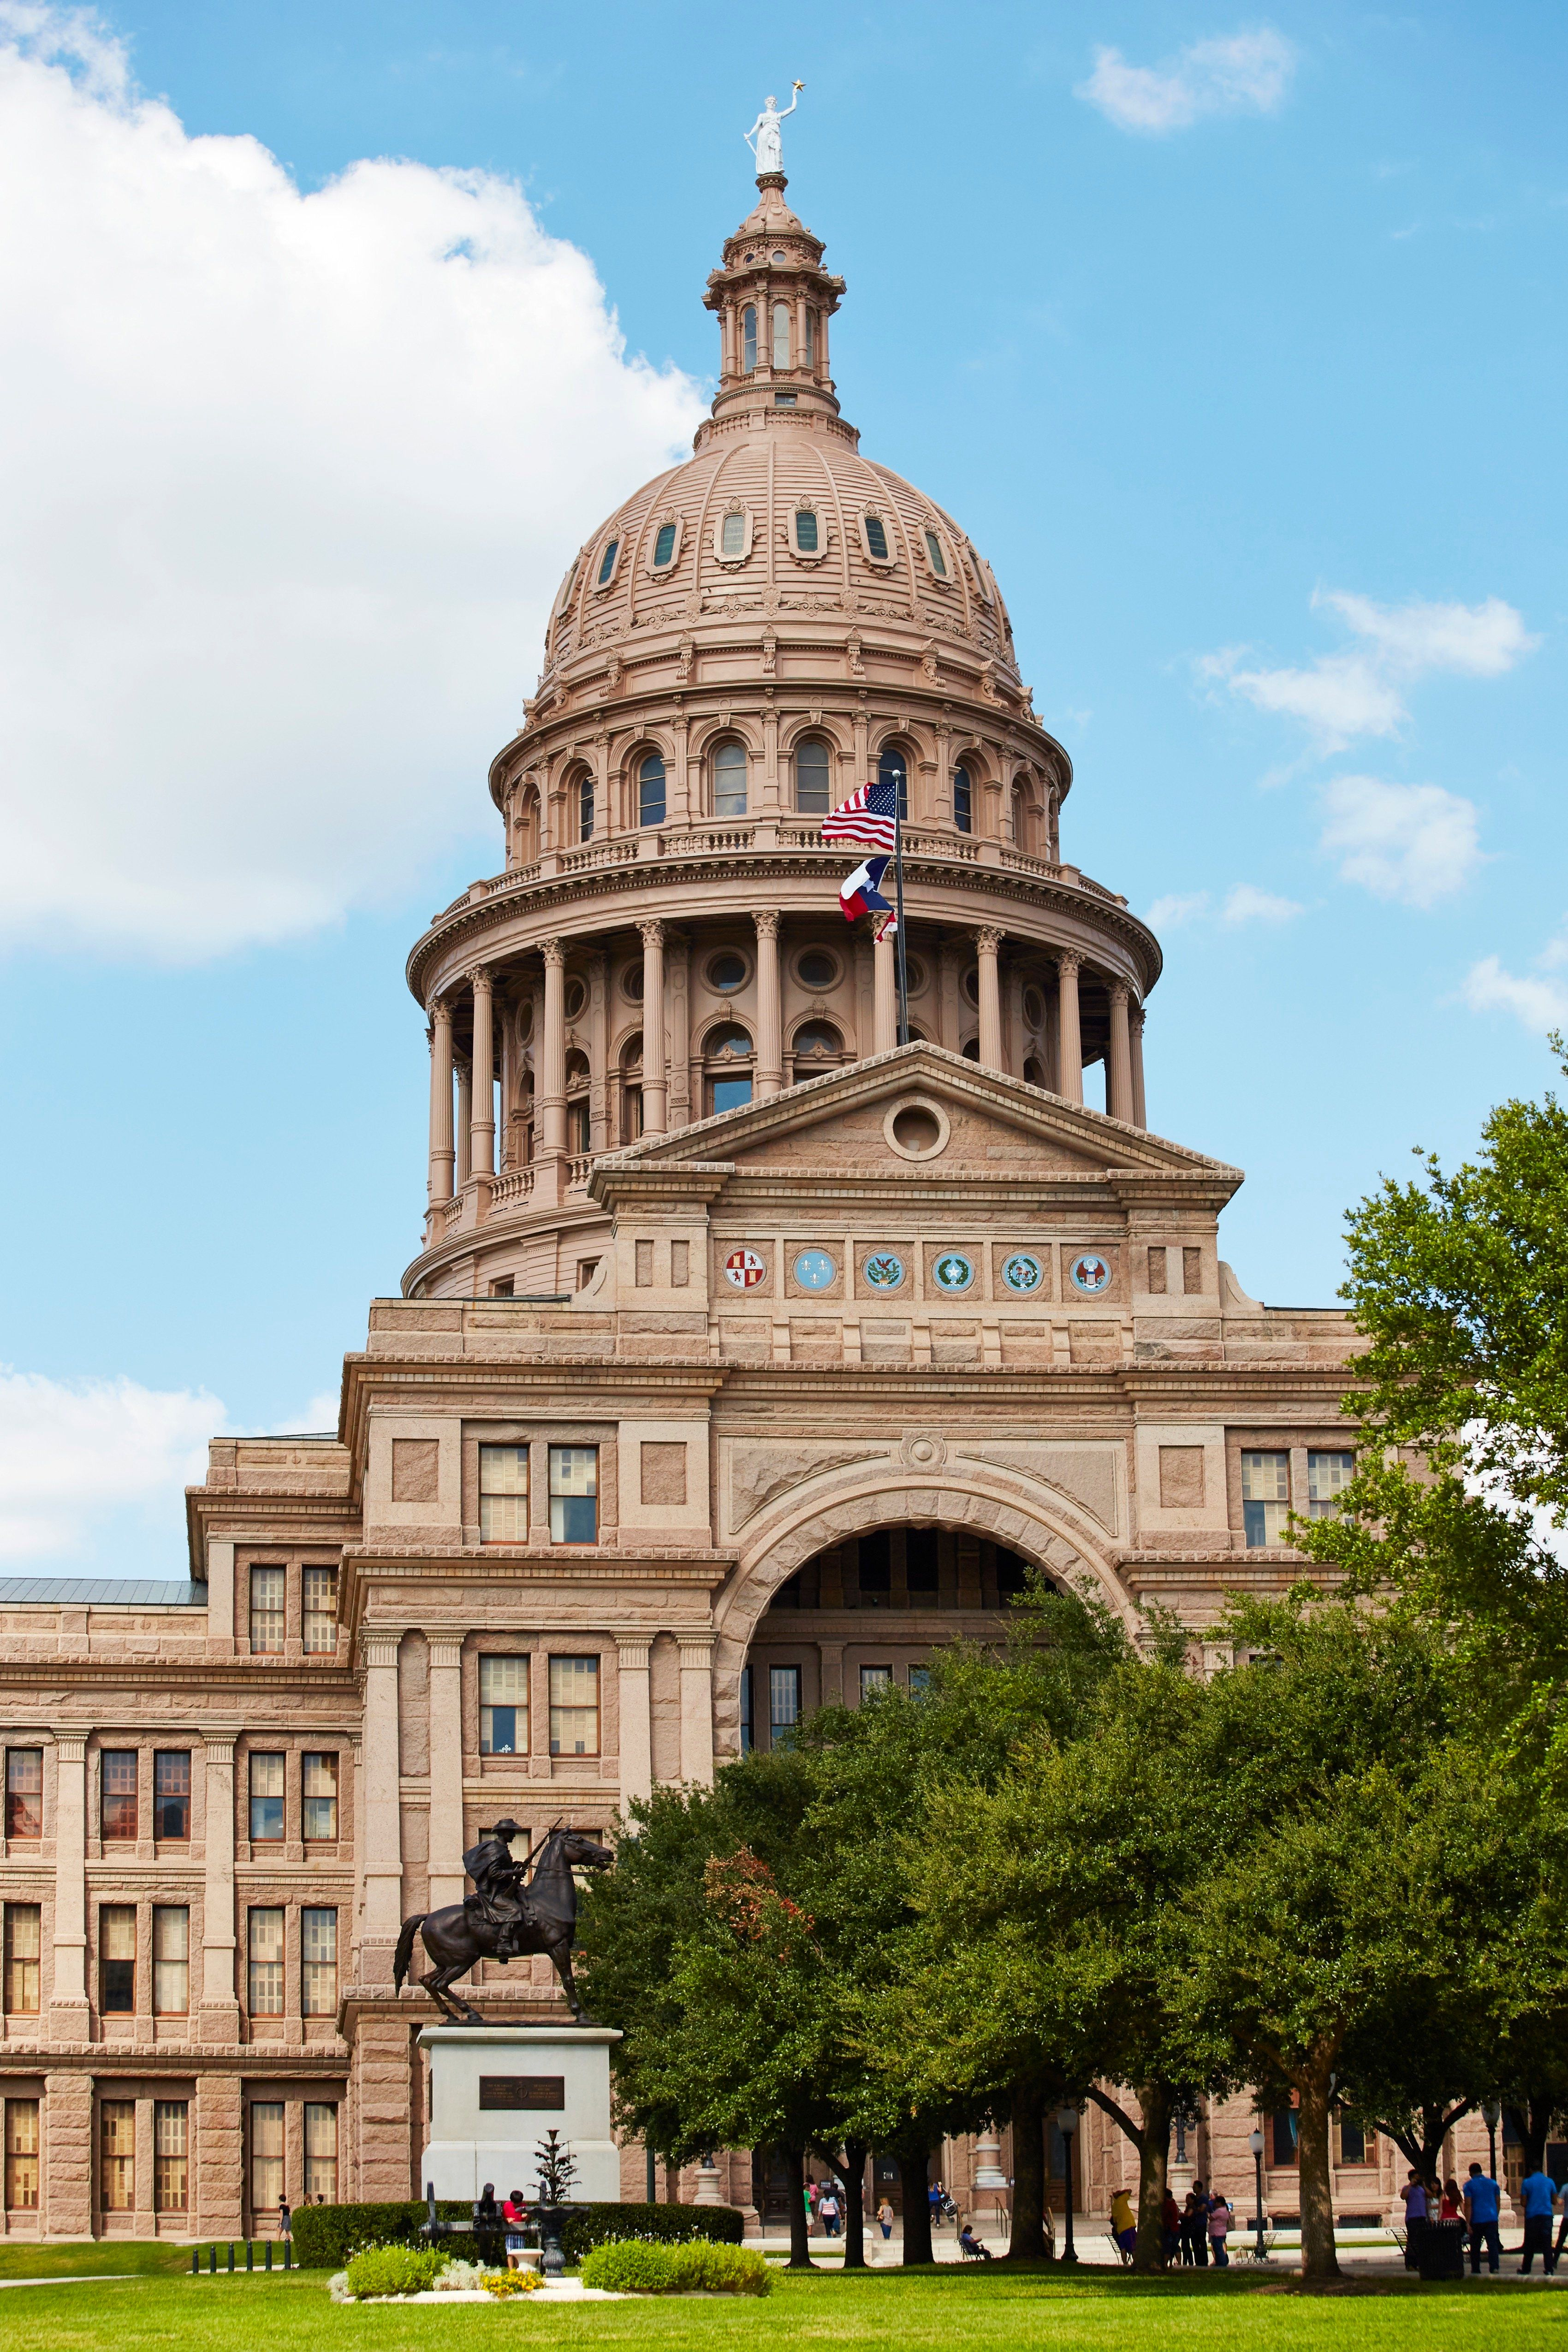 State Capitol Building in Austin, Austin, America. (Photo by: Loop Images/UIG via Getty Images)